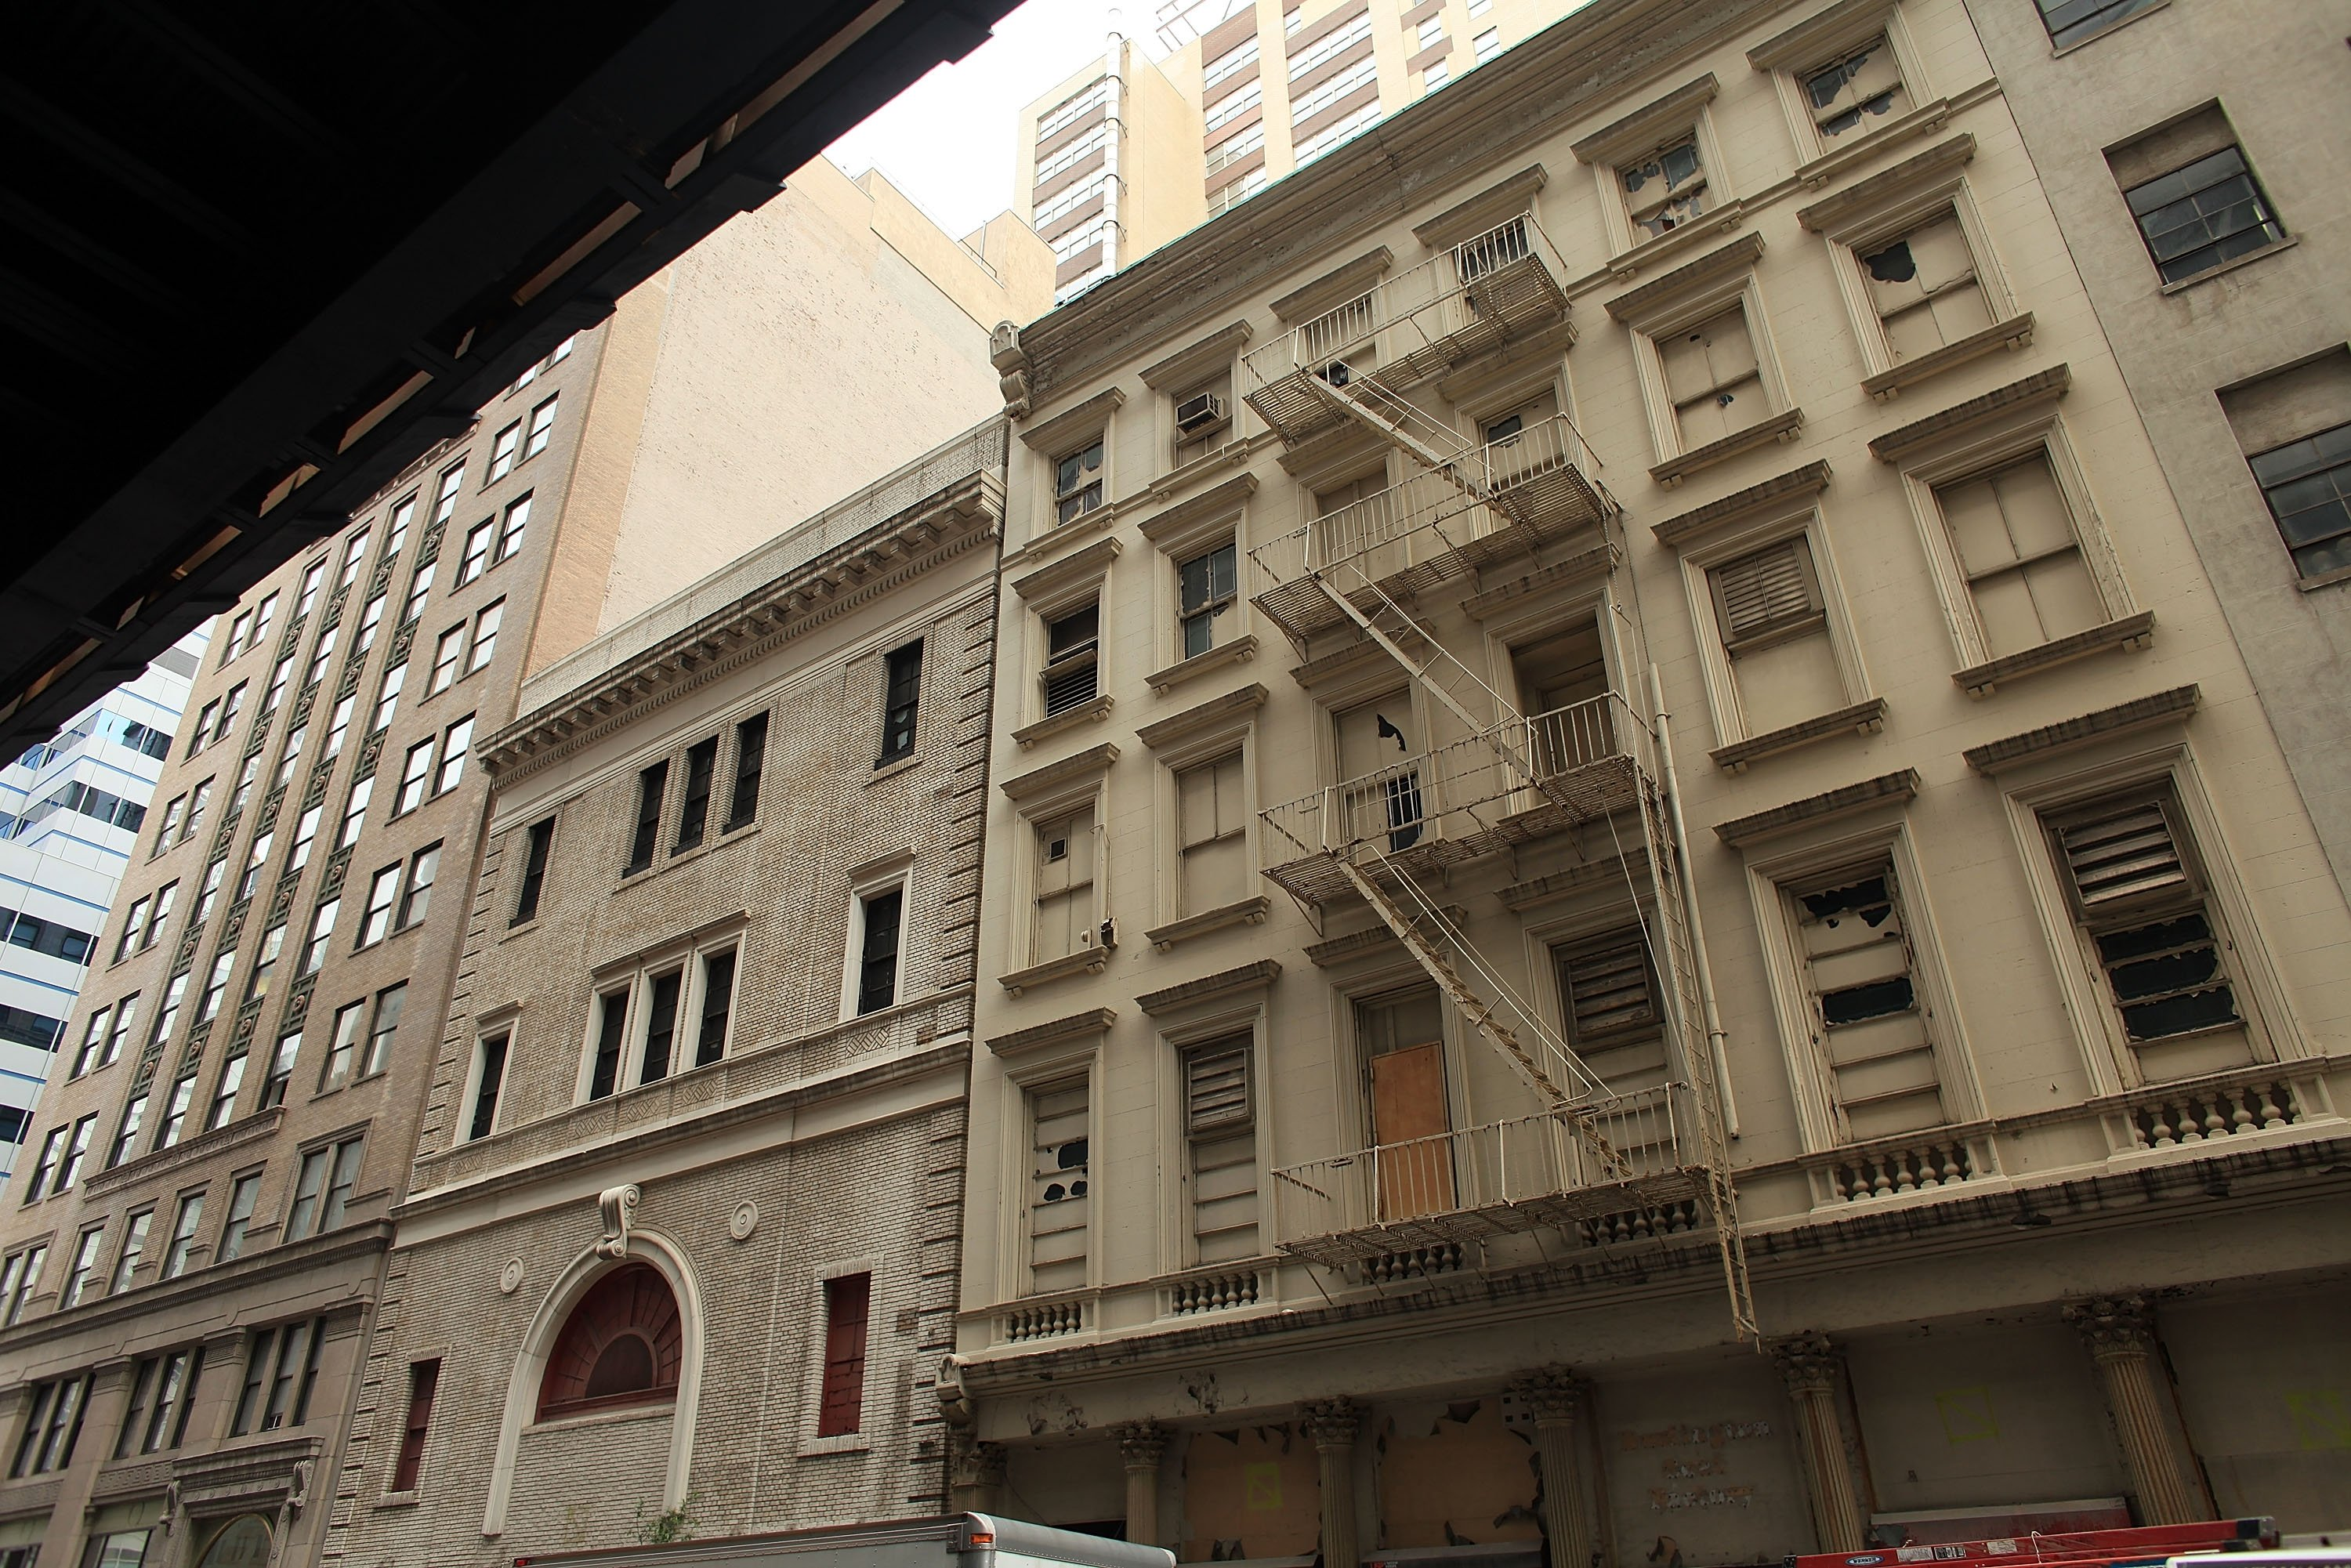 The building poised to house the Cordoba Initiative Mosque and Cultural Center, in New York City, New York, U.S., Aug. 16, 2010. (Photo by Getty Images)